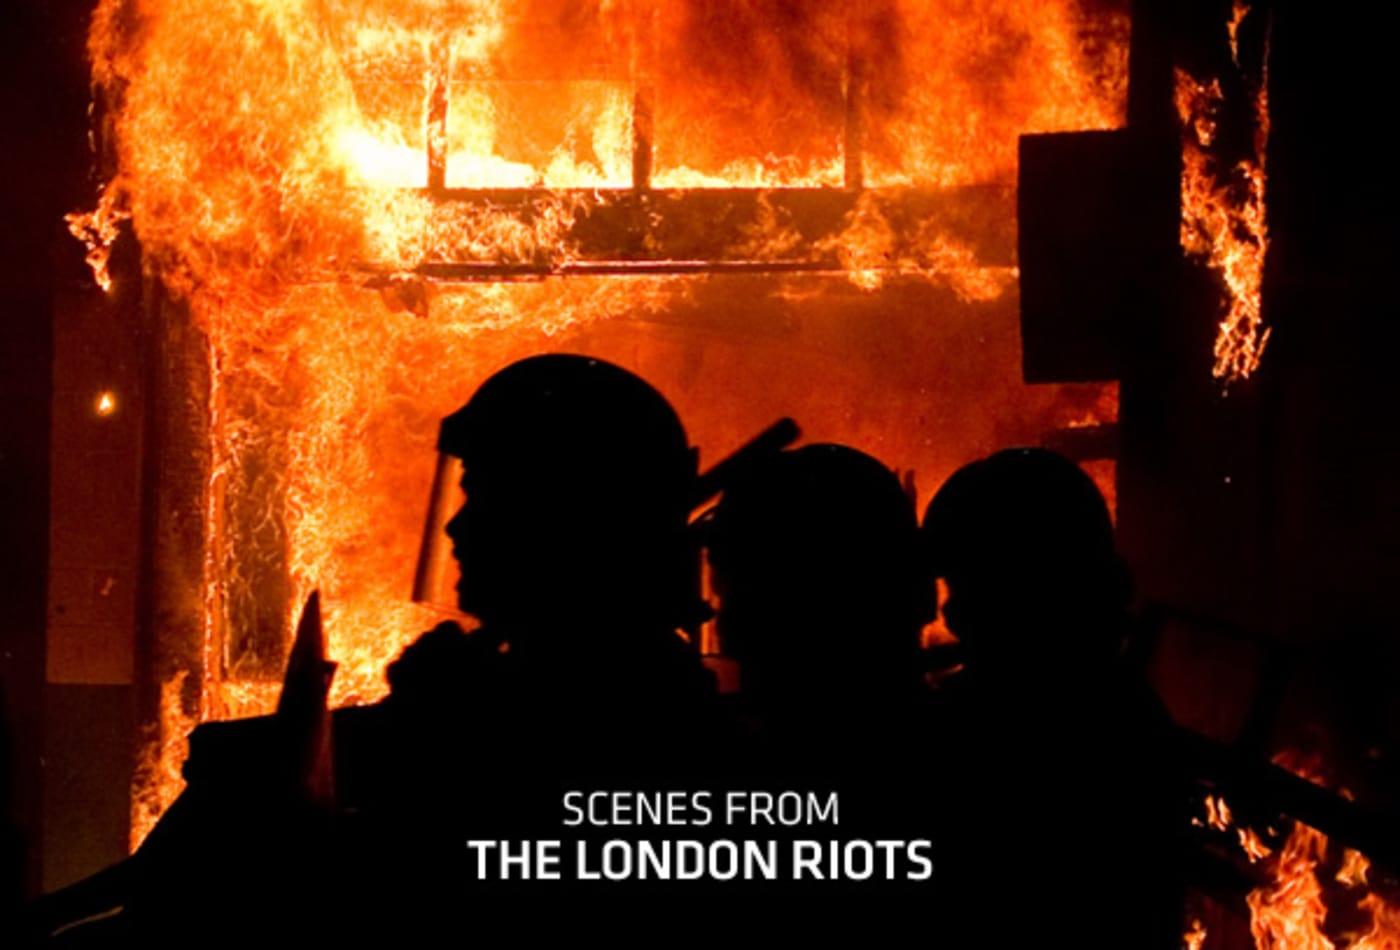 CNBC_scenes_from_london_riots_cover.jpg